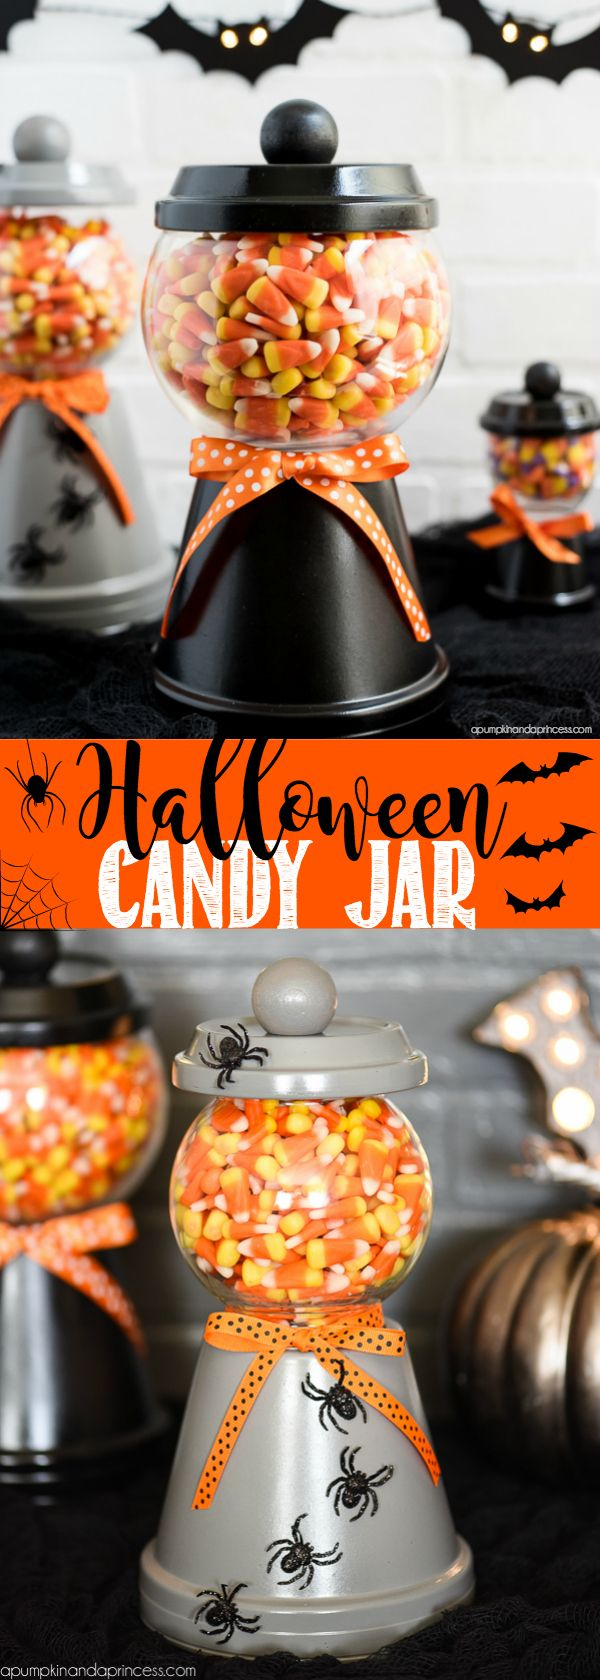 how to make a halloween candy jar made out of a terra cotta pot saucer a glass bowl and wooden knob perfect for decorating and displaying your favorite - Halloween Decorations For A Party